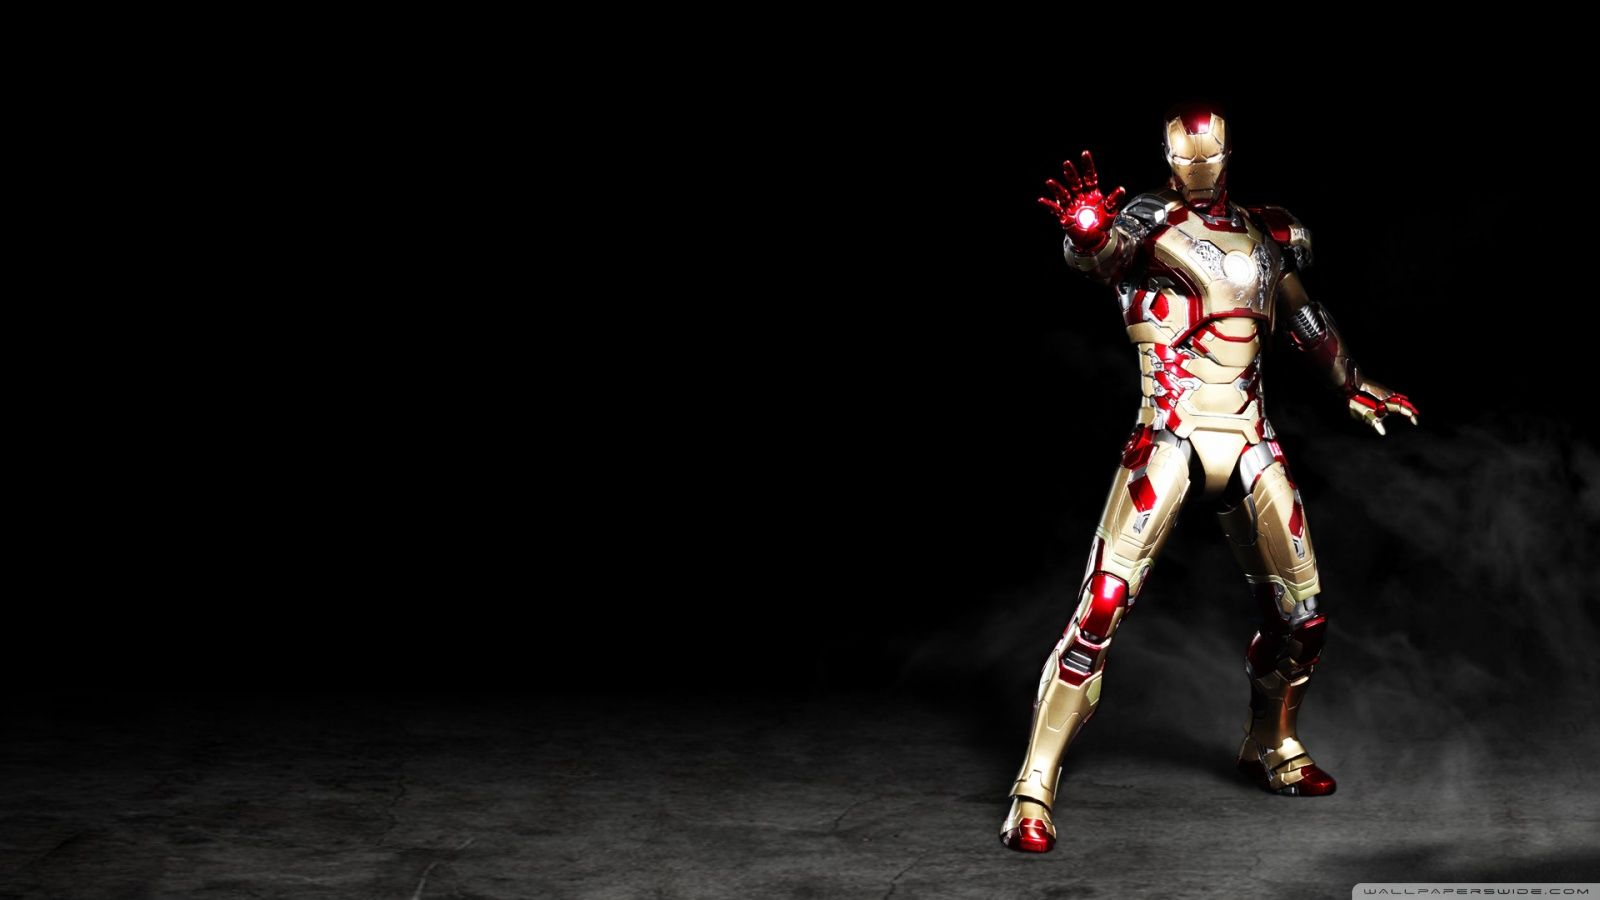 Iron Man 3 Mark 42 Wallpaper Hd HD Desktop High Definition